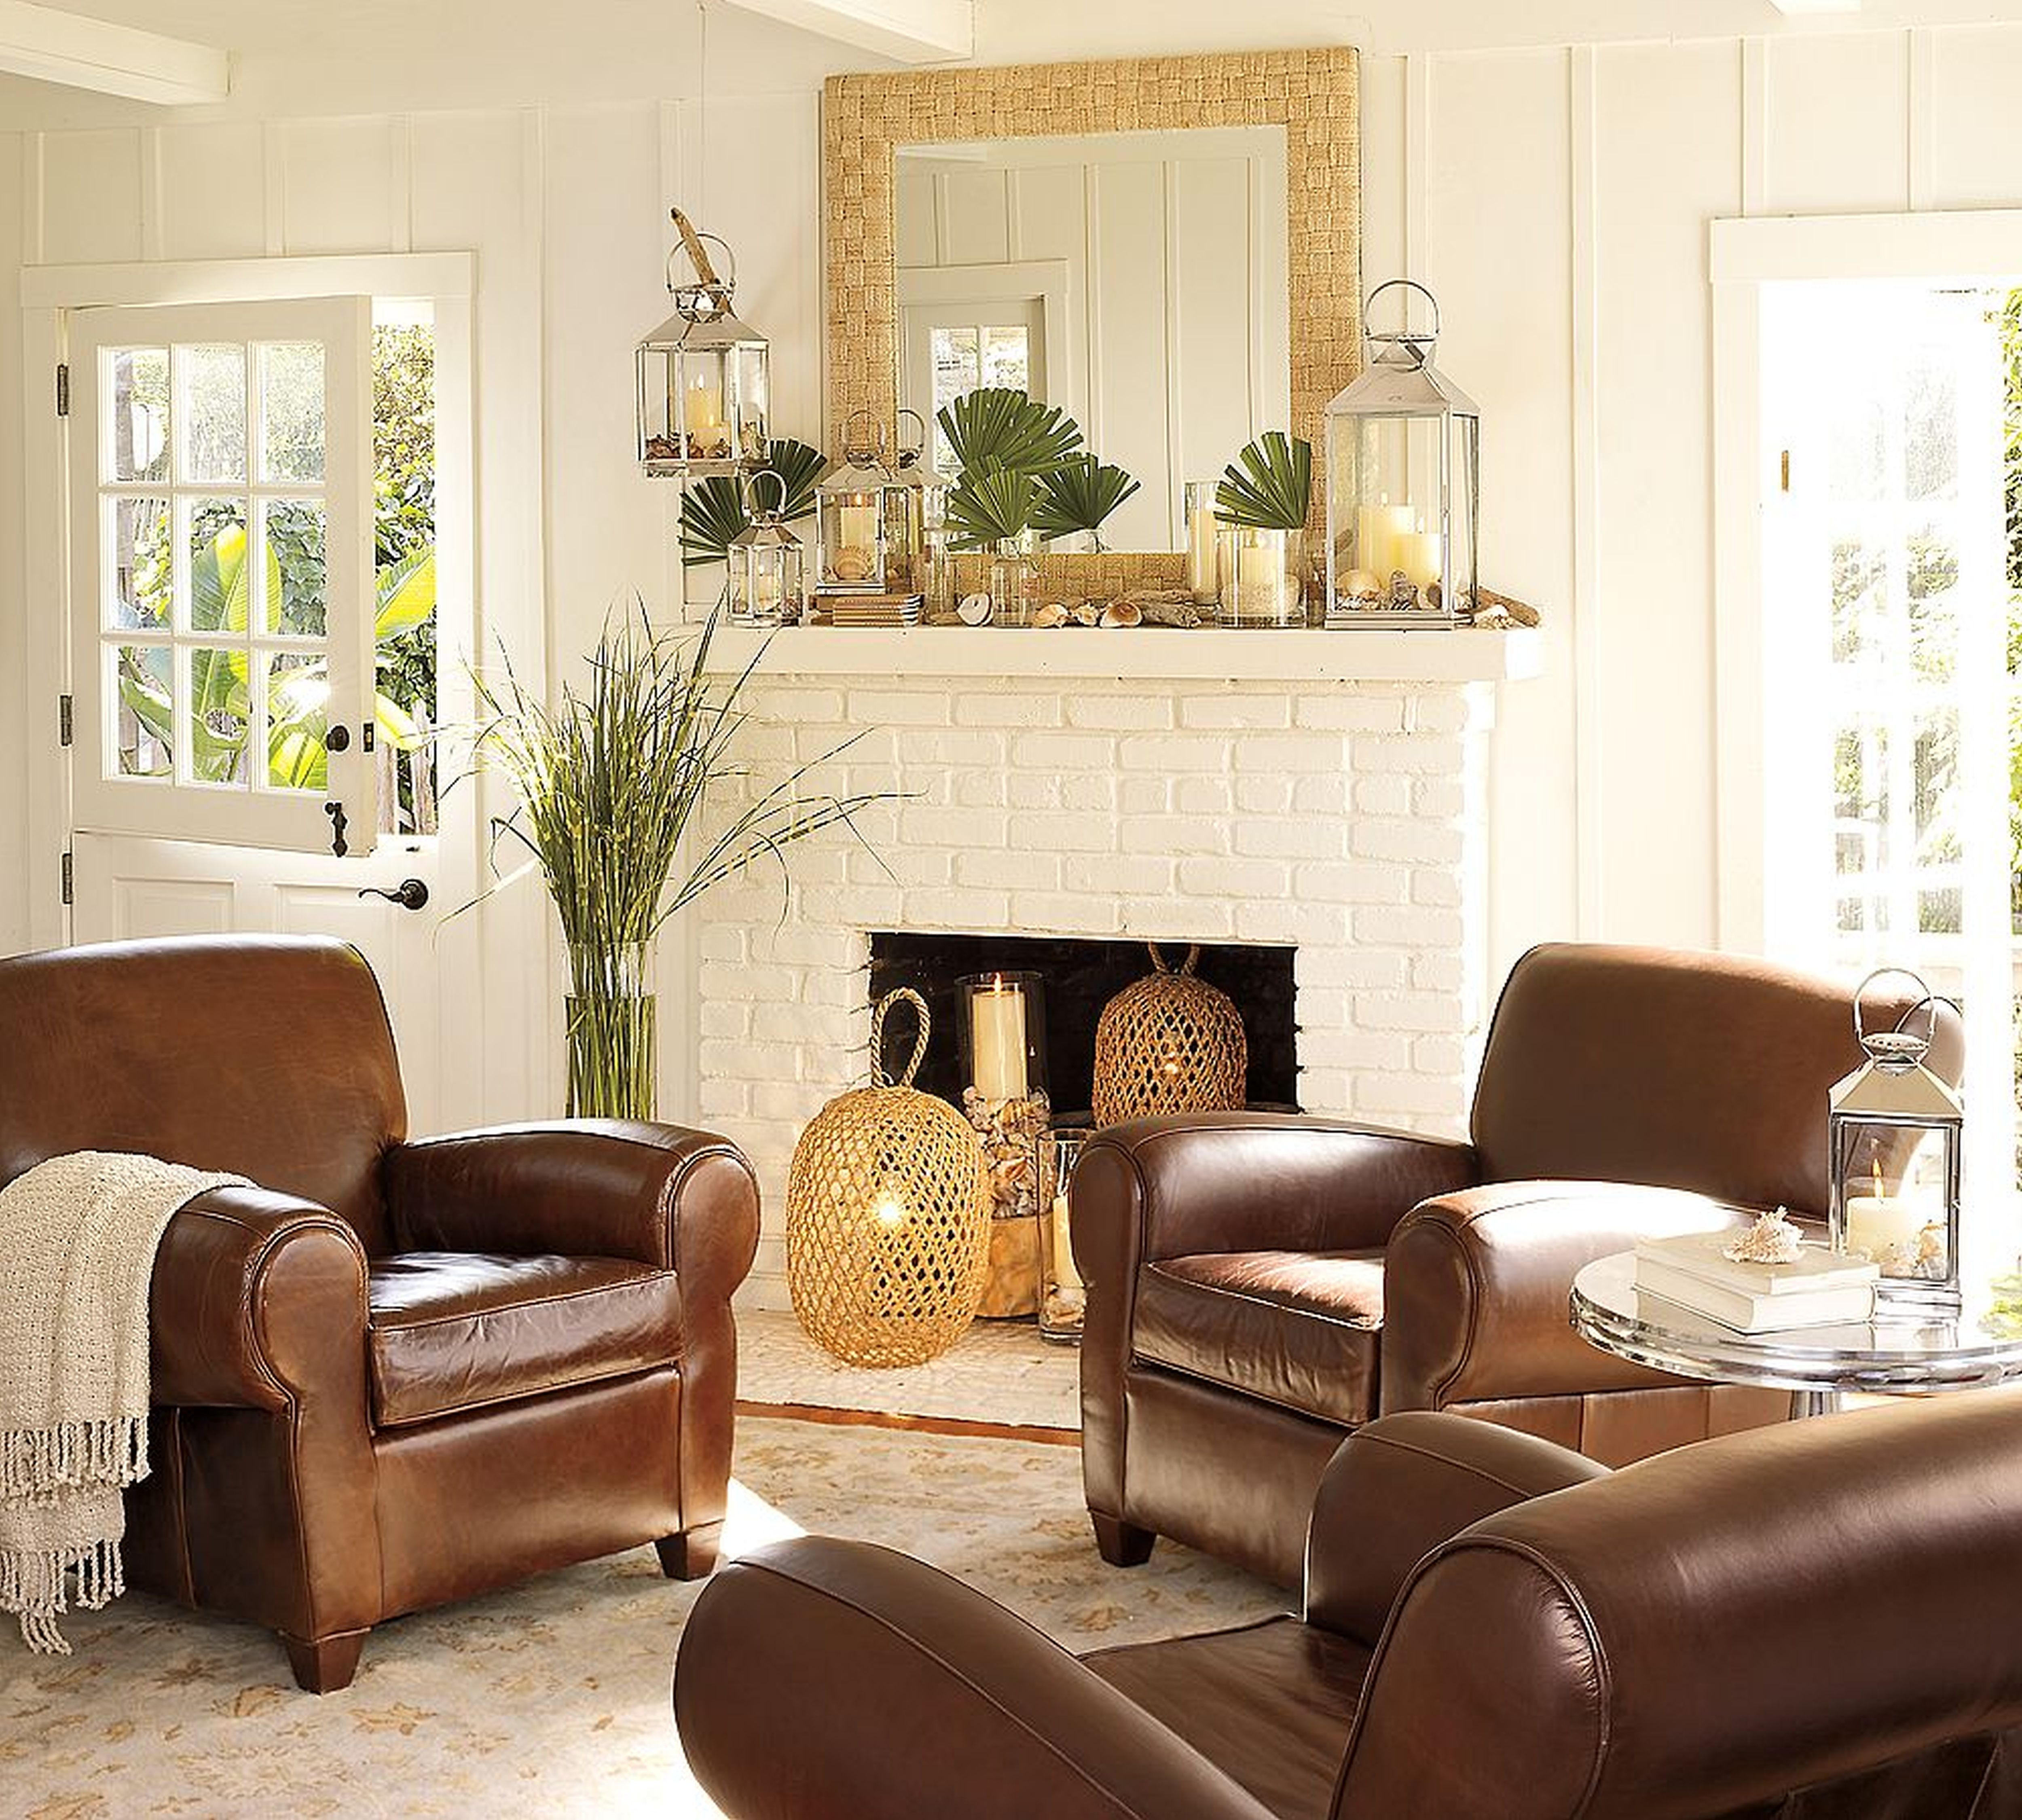 Ideas Pottery Barn Living Room Ideas With Brown Leather Sofa On White Shag Rug Living Room Leather Brown Living Room Brown Leather Living Room Furniture